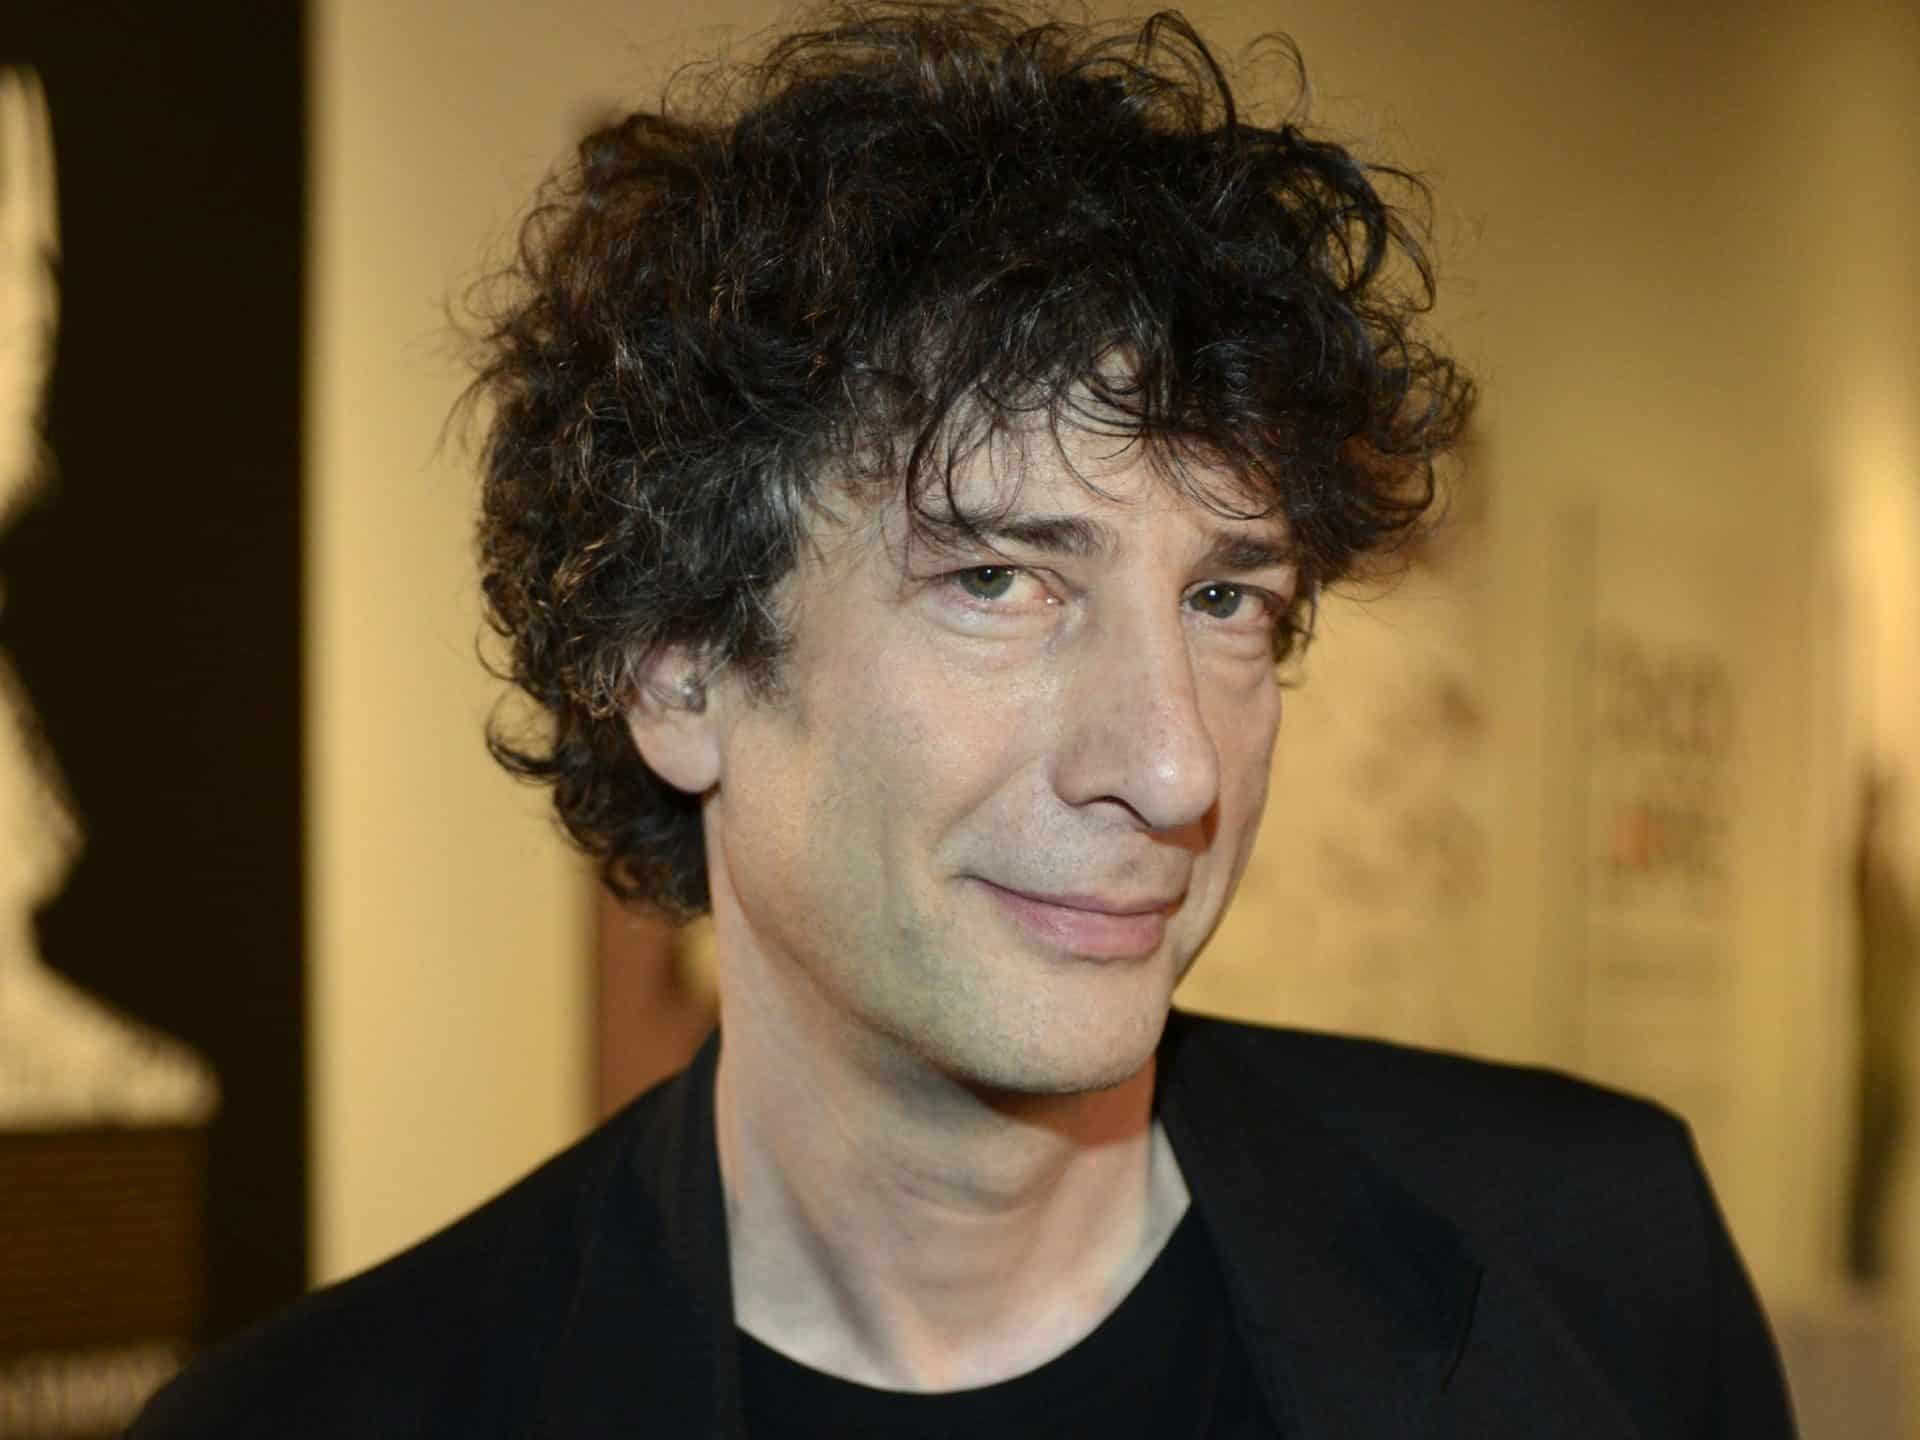 Neil Gaiman - Audiobook Author